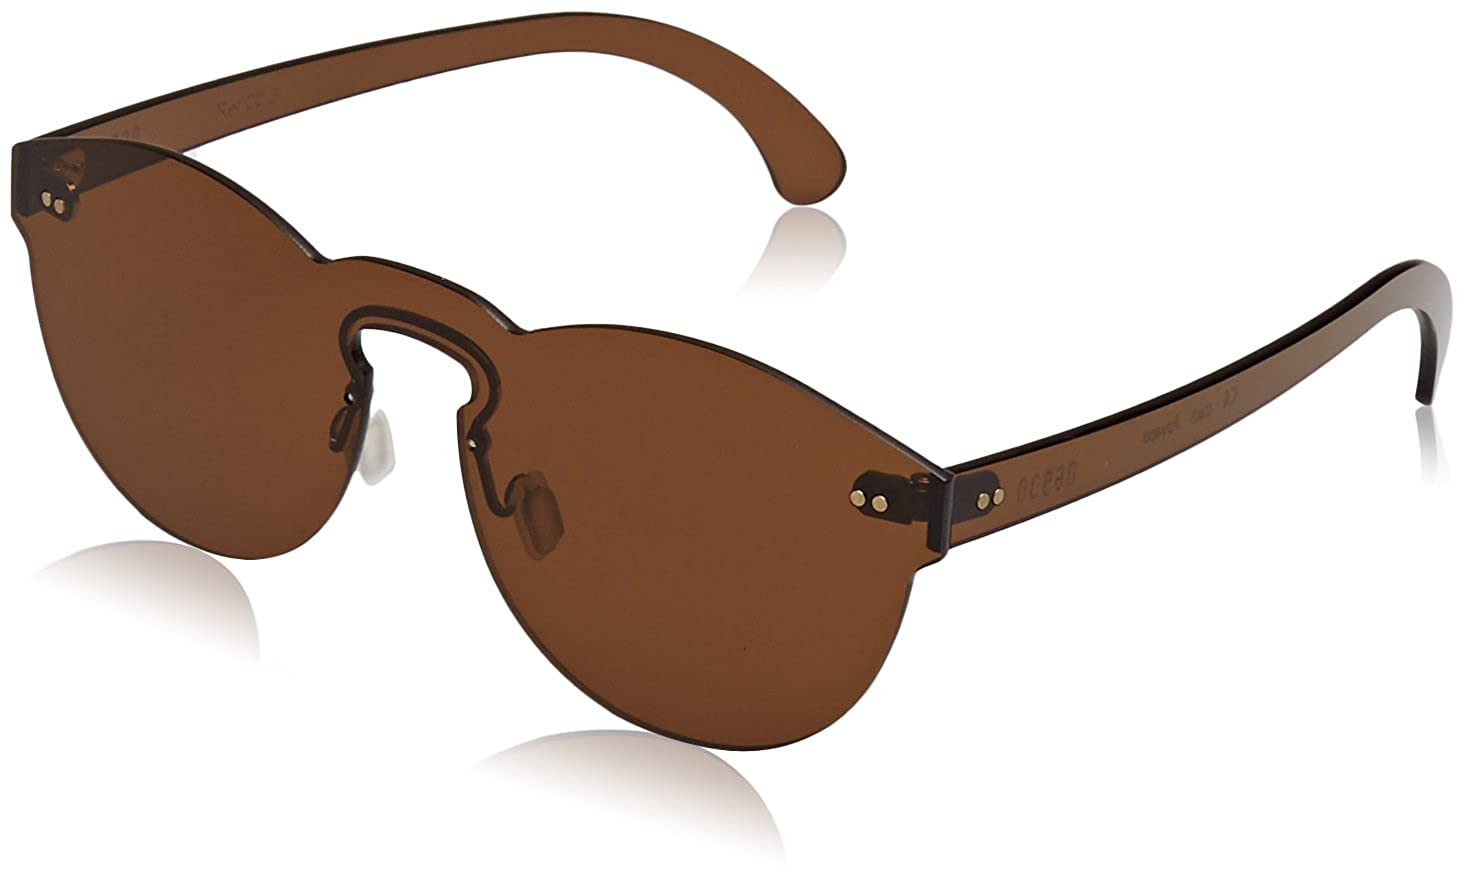 Ocean Eye Gafas de Sol, (Marrone), 55 Unisex Adulto